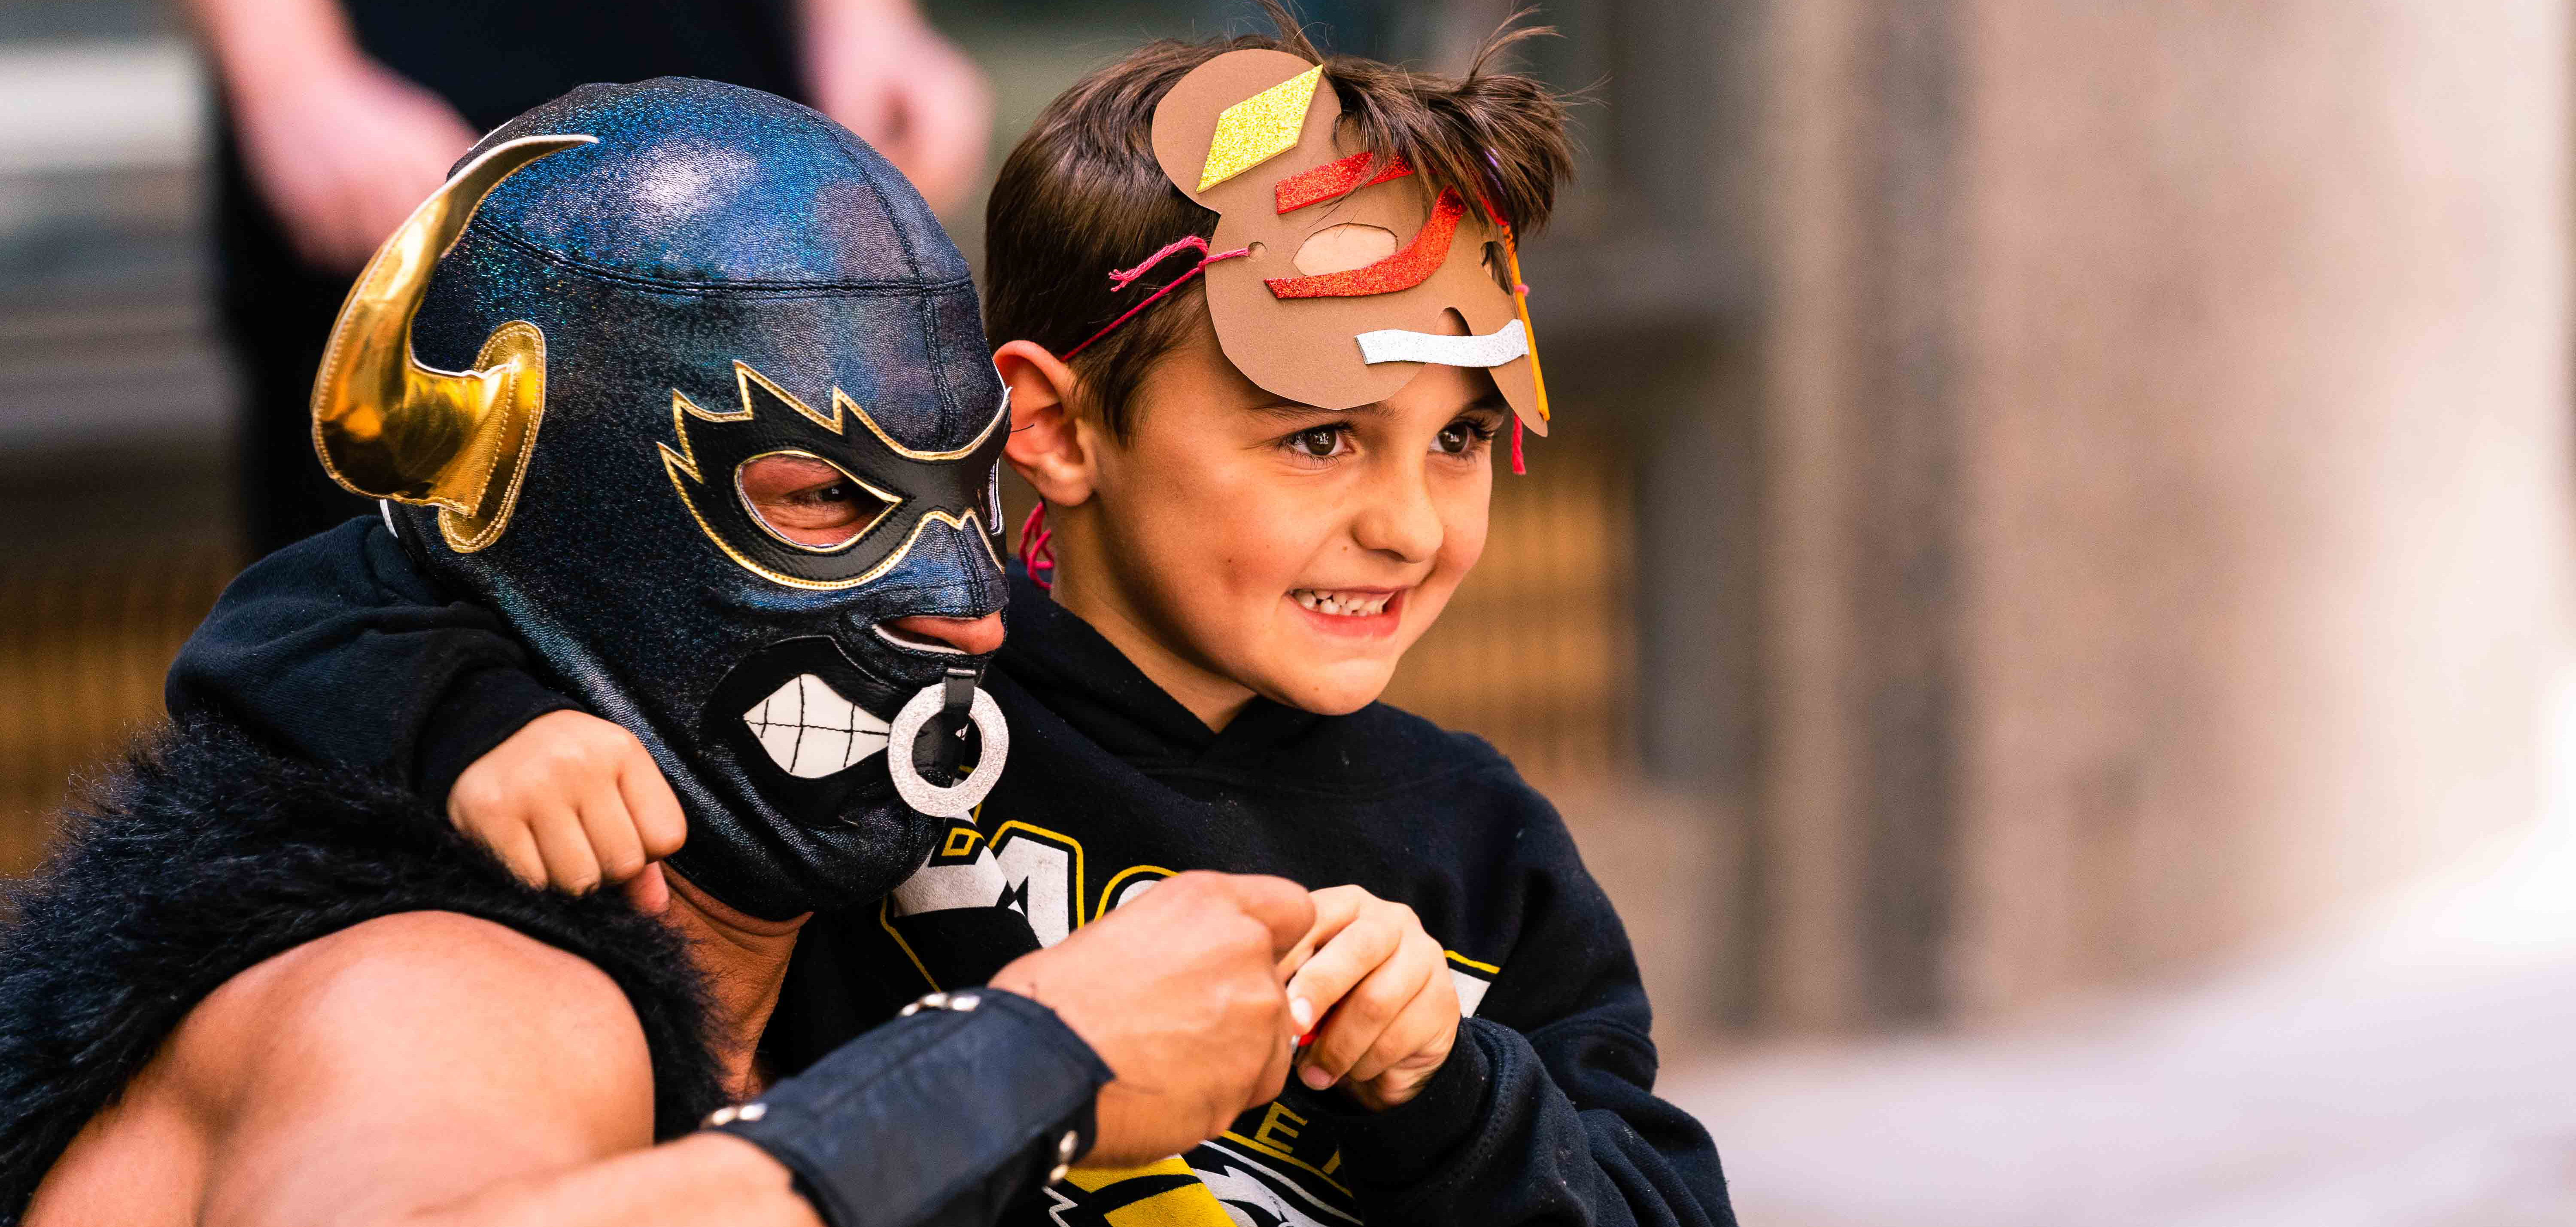 A luchador and kid at Elote's Cinco de Mayo event in downtown Tulsa, Oklahoma's Deco District.